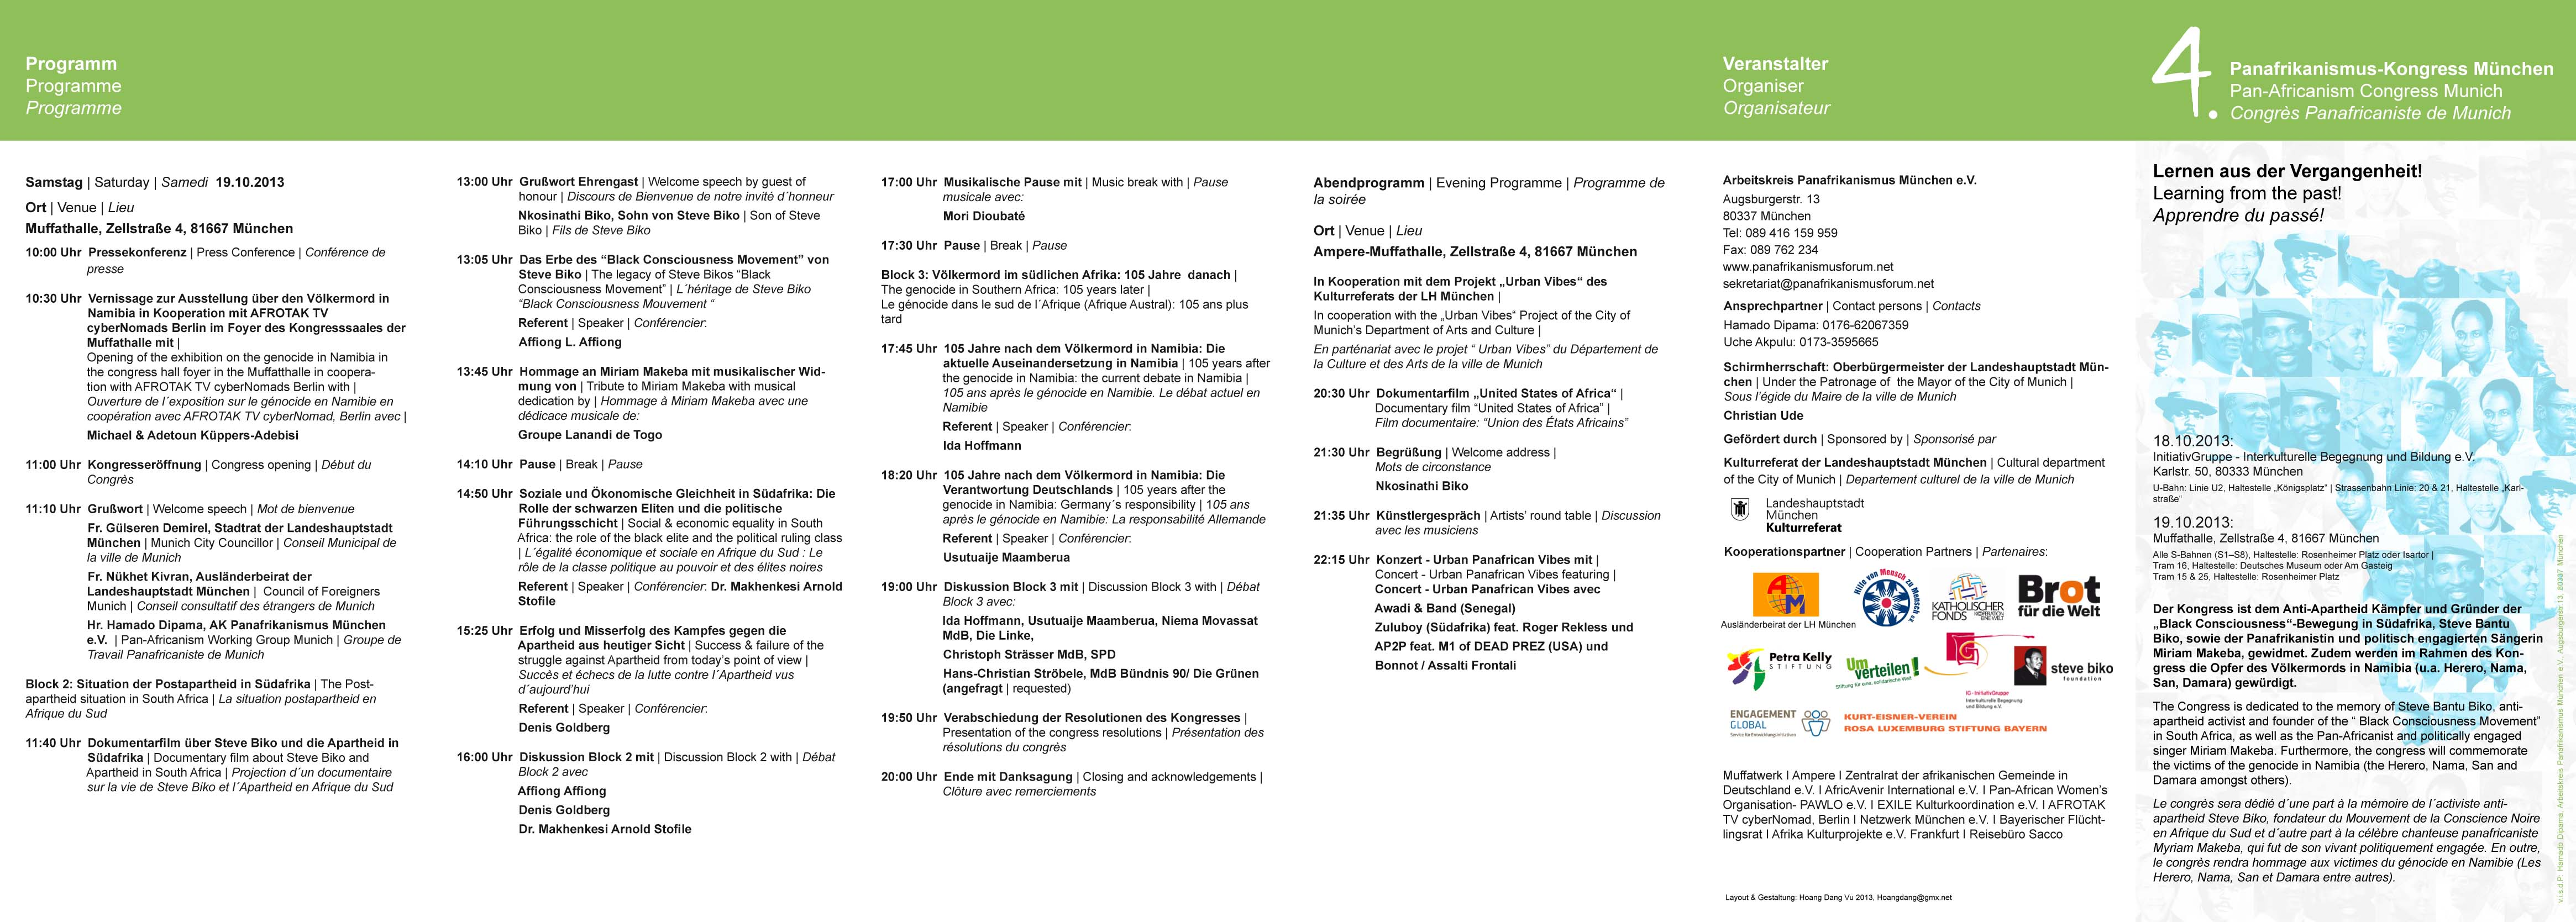 files/Flyer_Kongress_2013_Final1.jpg